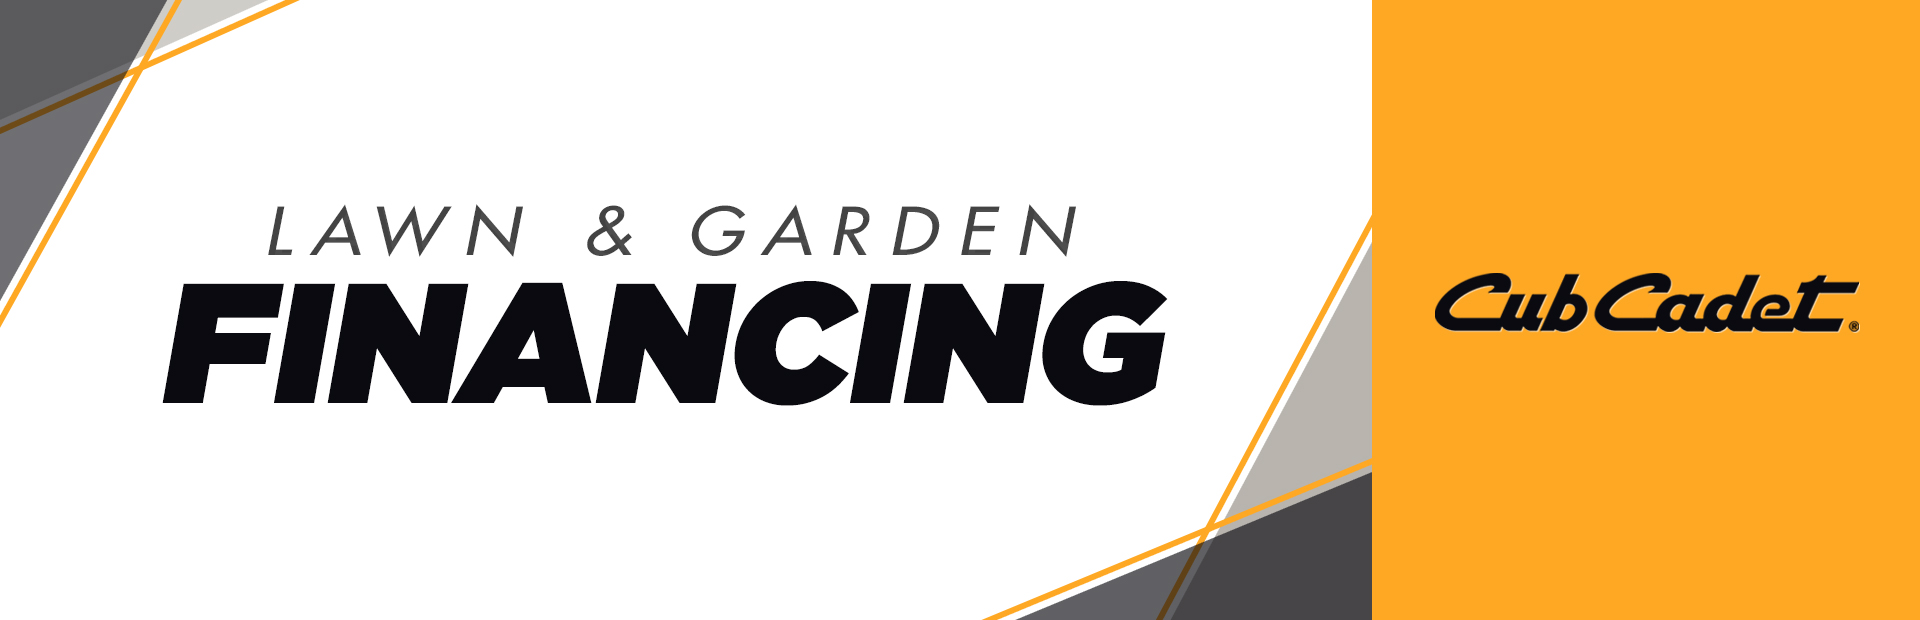 Cub Cadet: Lawn and Garden Financing